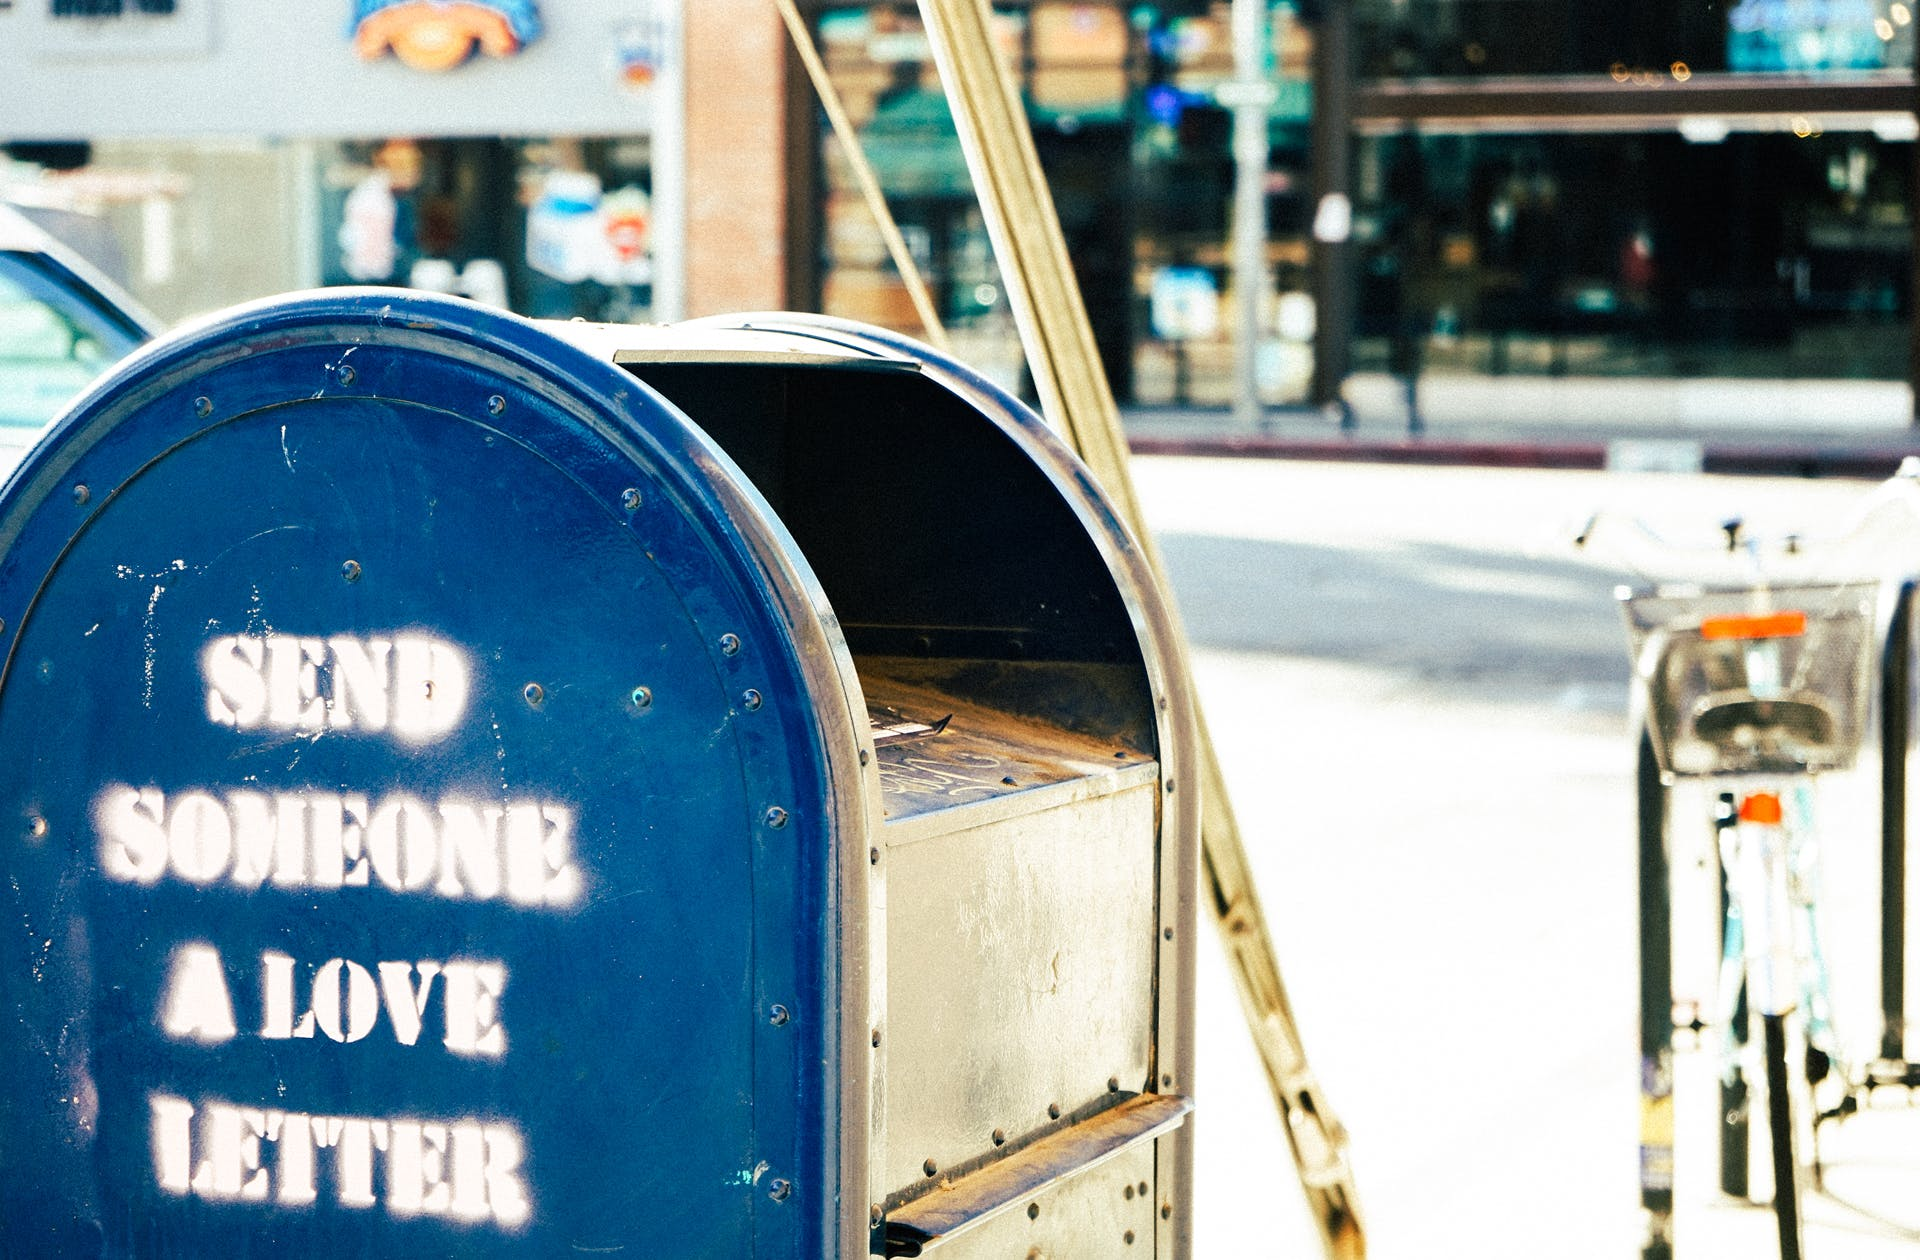 Shallow Focus Photography of Mailbox